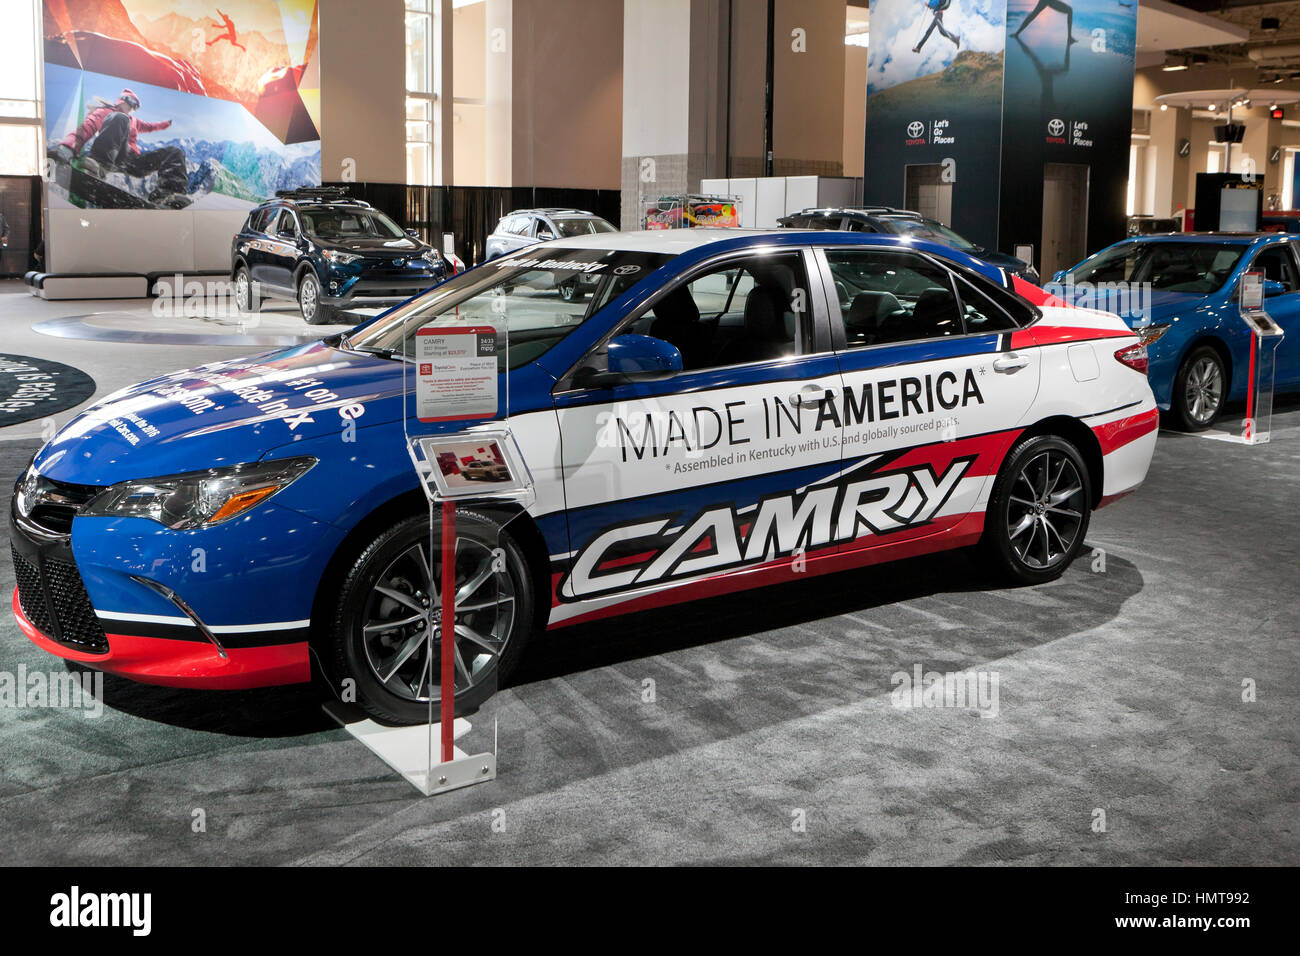 2017 toyota camry model with made in america decals on display at the 2017